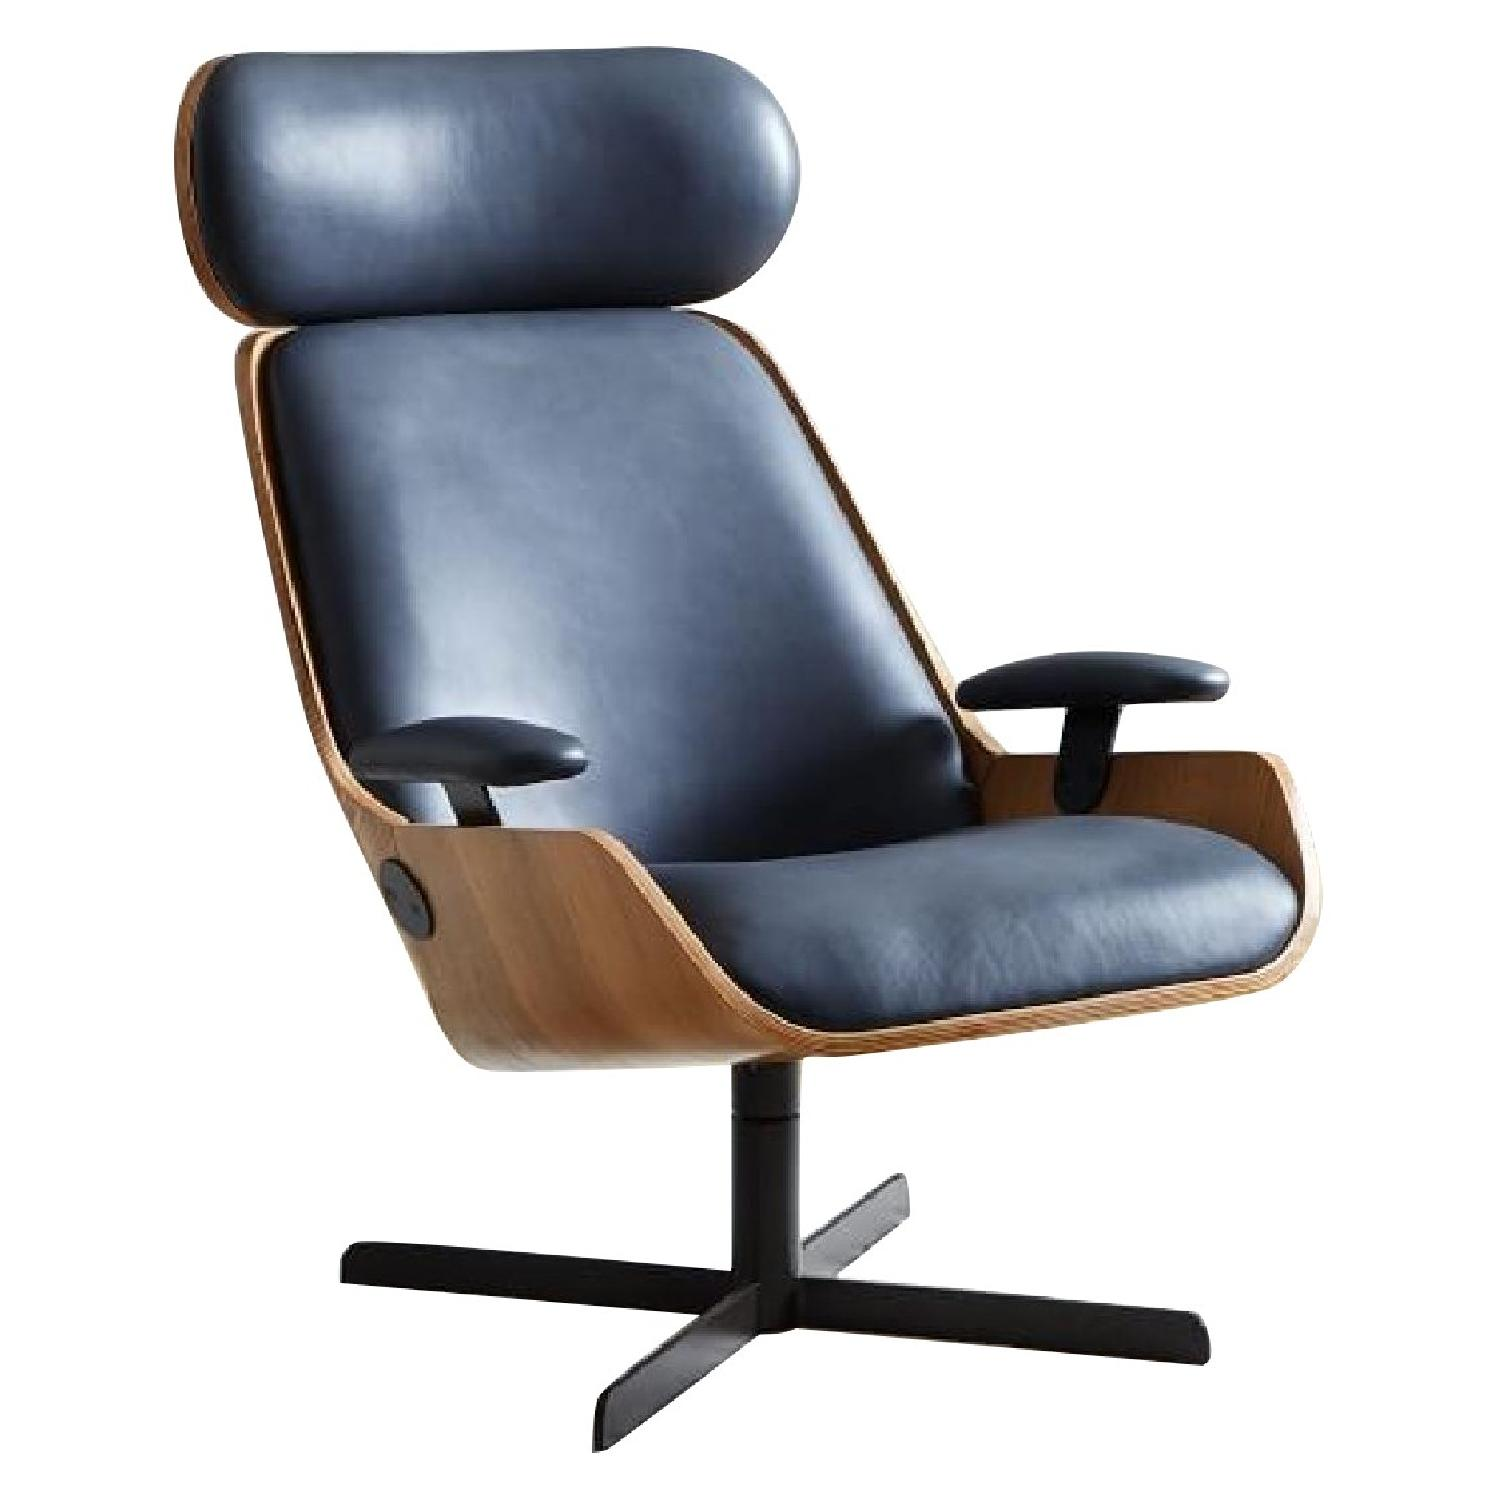 Malcolm Bent Ply Leather Swivel Chair